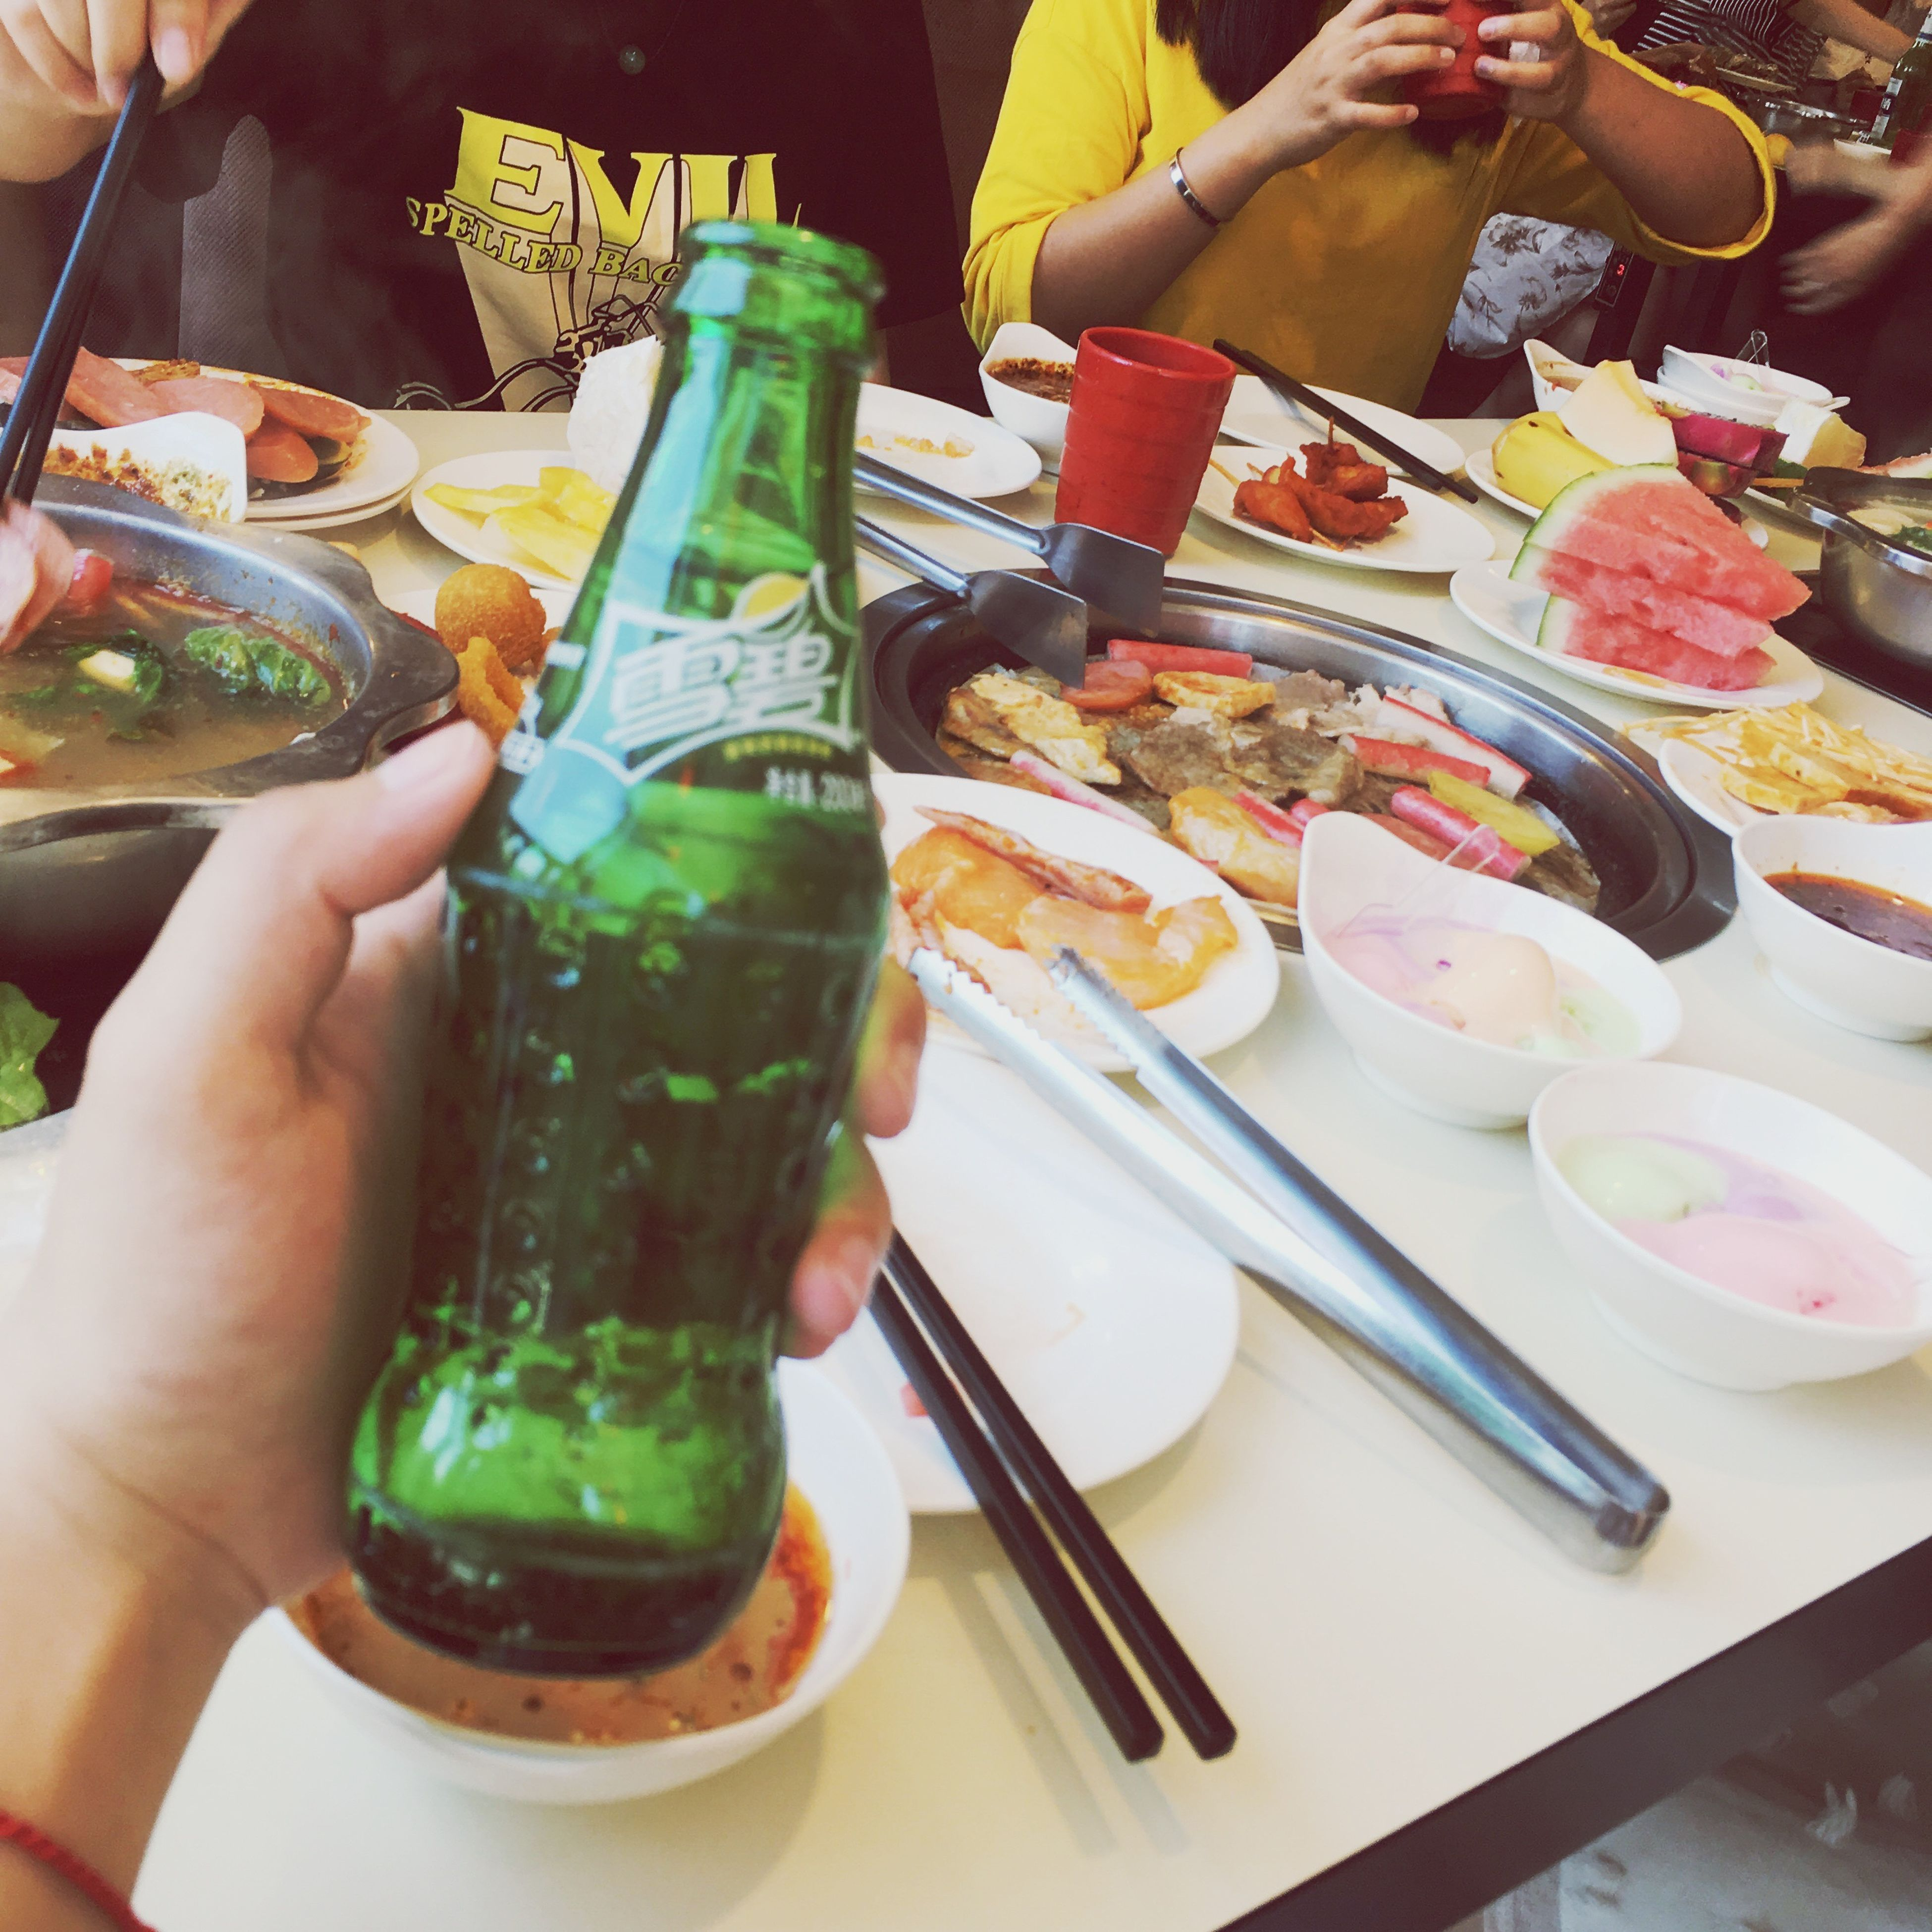 human hand, food and drink, real people, human body part, food, drink, holding, table, bottle, refreshment, drinking straw, fork, plate, men, freshness, chopsticks, indoors, one person, ready-to-eat, drinking glass, lifestyles, healthy eating, day, women, close-up, alcohol, eating, friendship, people